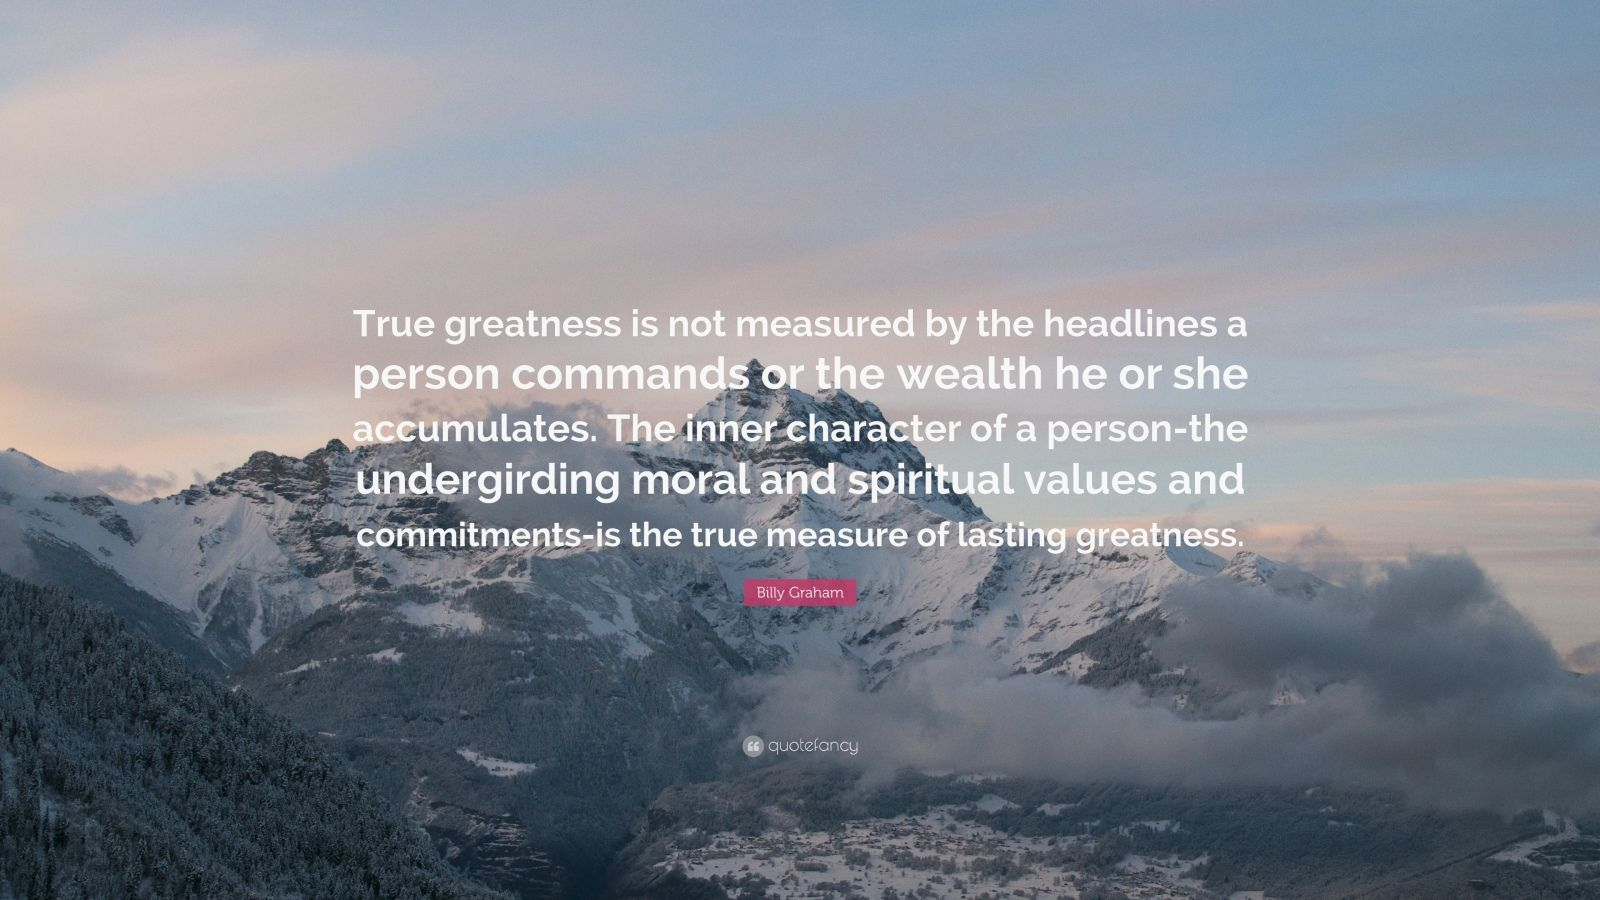 "Billy Graham Quote: ""True greatness is not measured by the headlines a person commands or the wealth he or she accumulates. The inner character of a person-the undergirding moral and spiritual values and commitments-is the true measure of lasting greatness."""